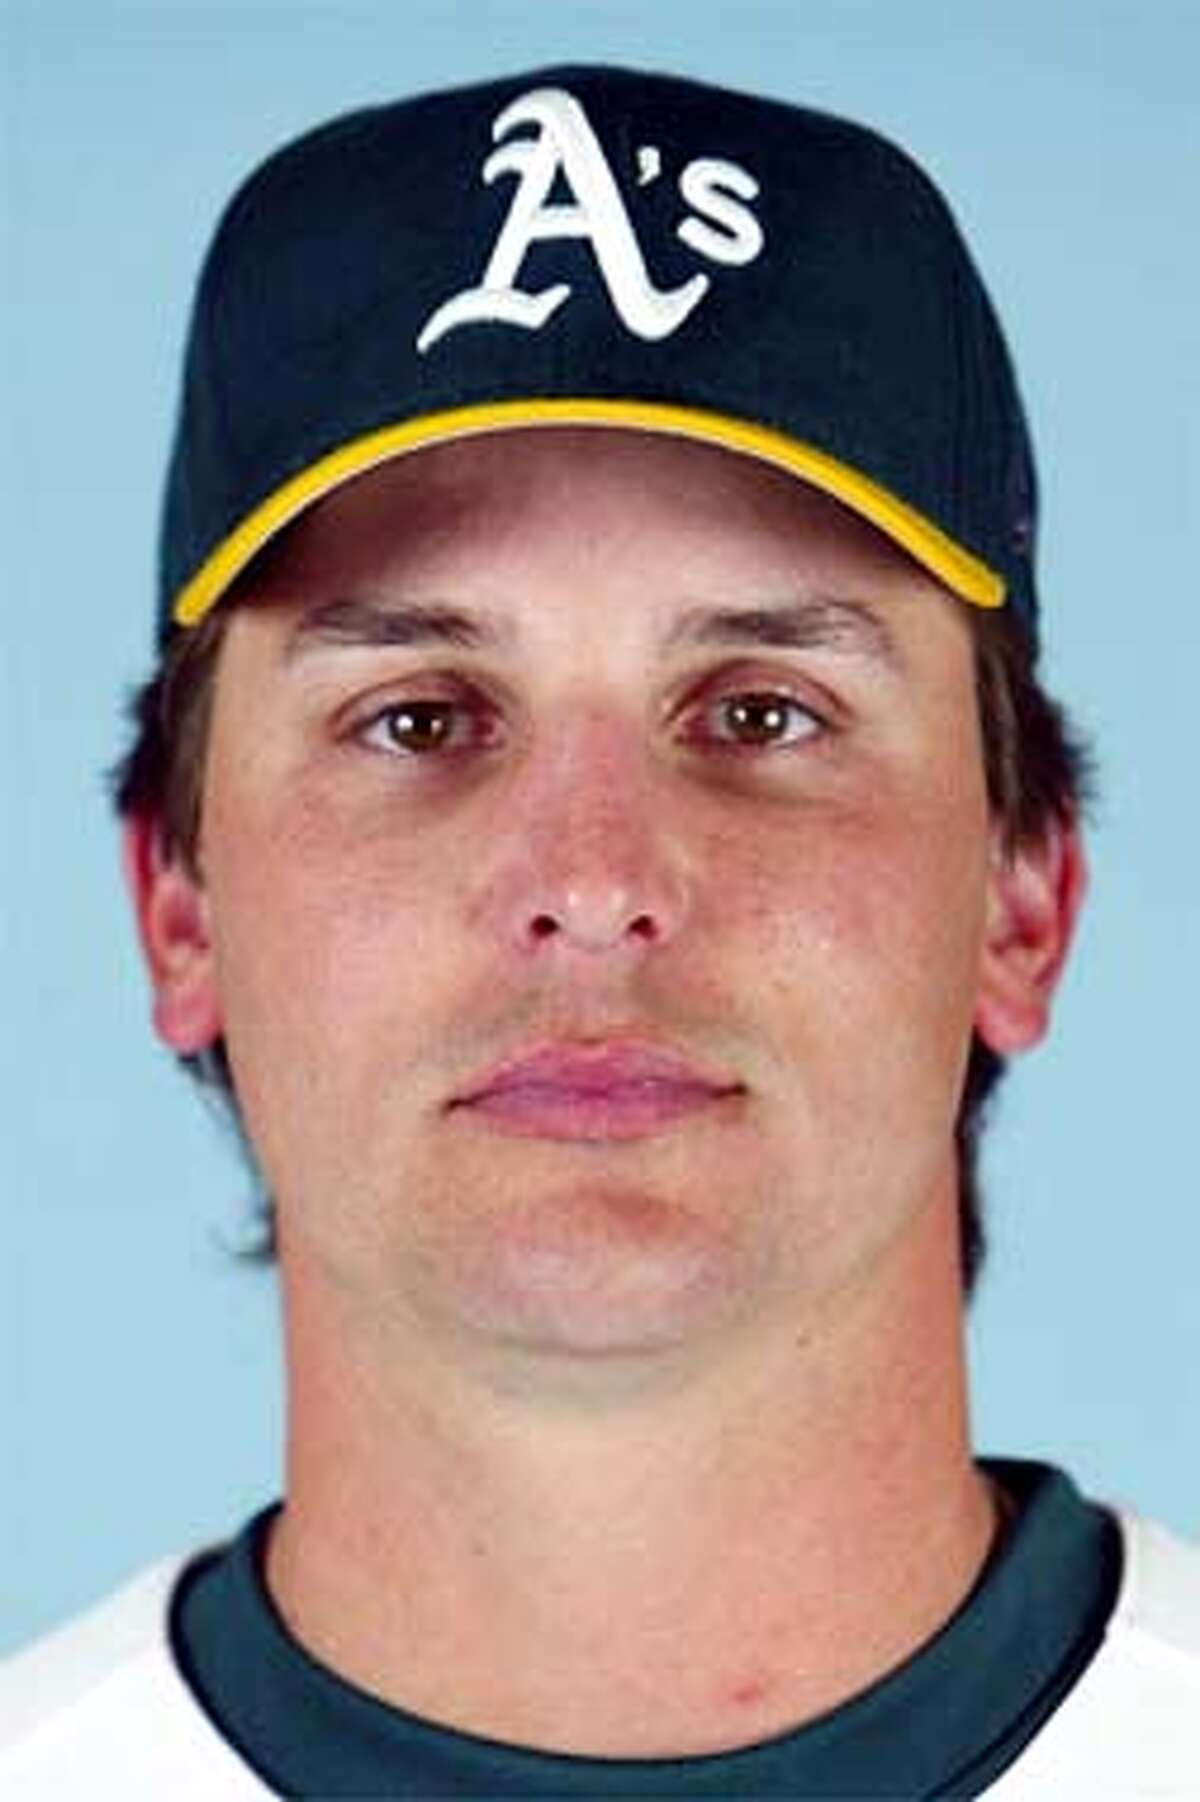 FOULKE001_AP.JPG This is a 2003 file photo of Keith Foulke of the Oakland Athletics baseball team (AP Photo/file)